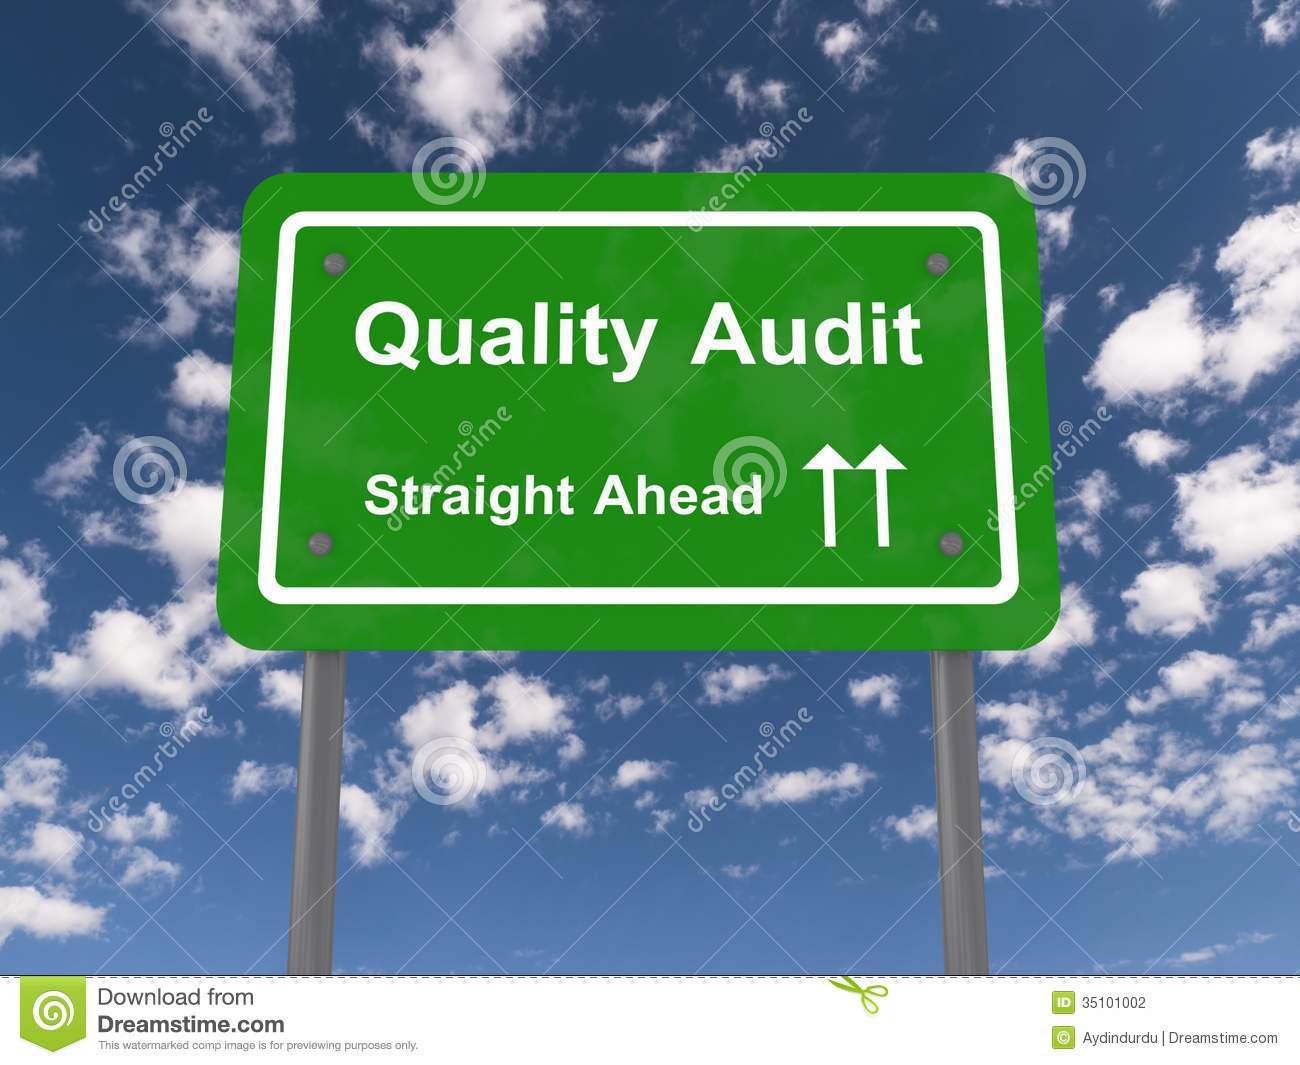 Quality audit straight ahead sign